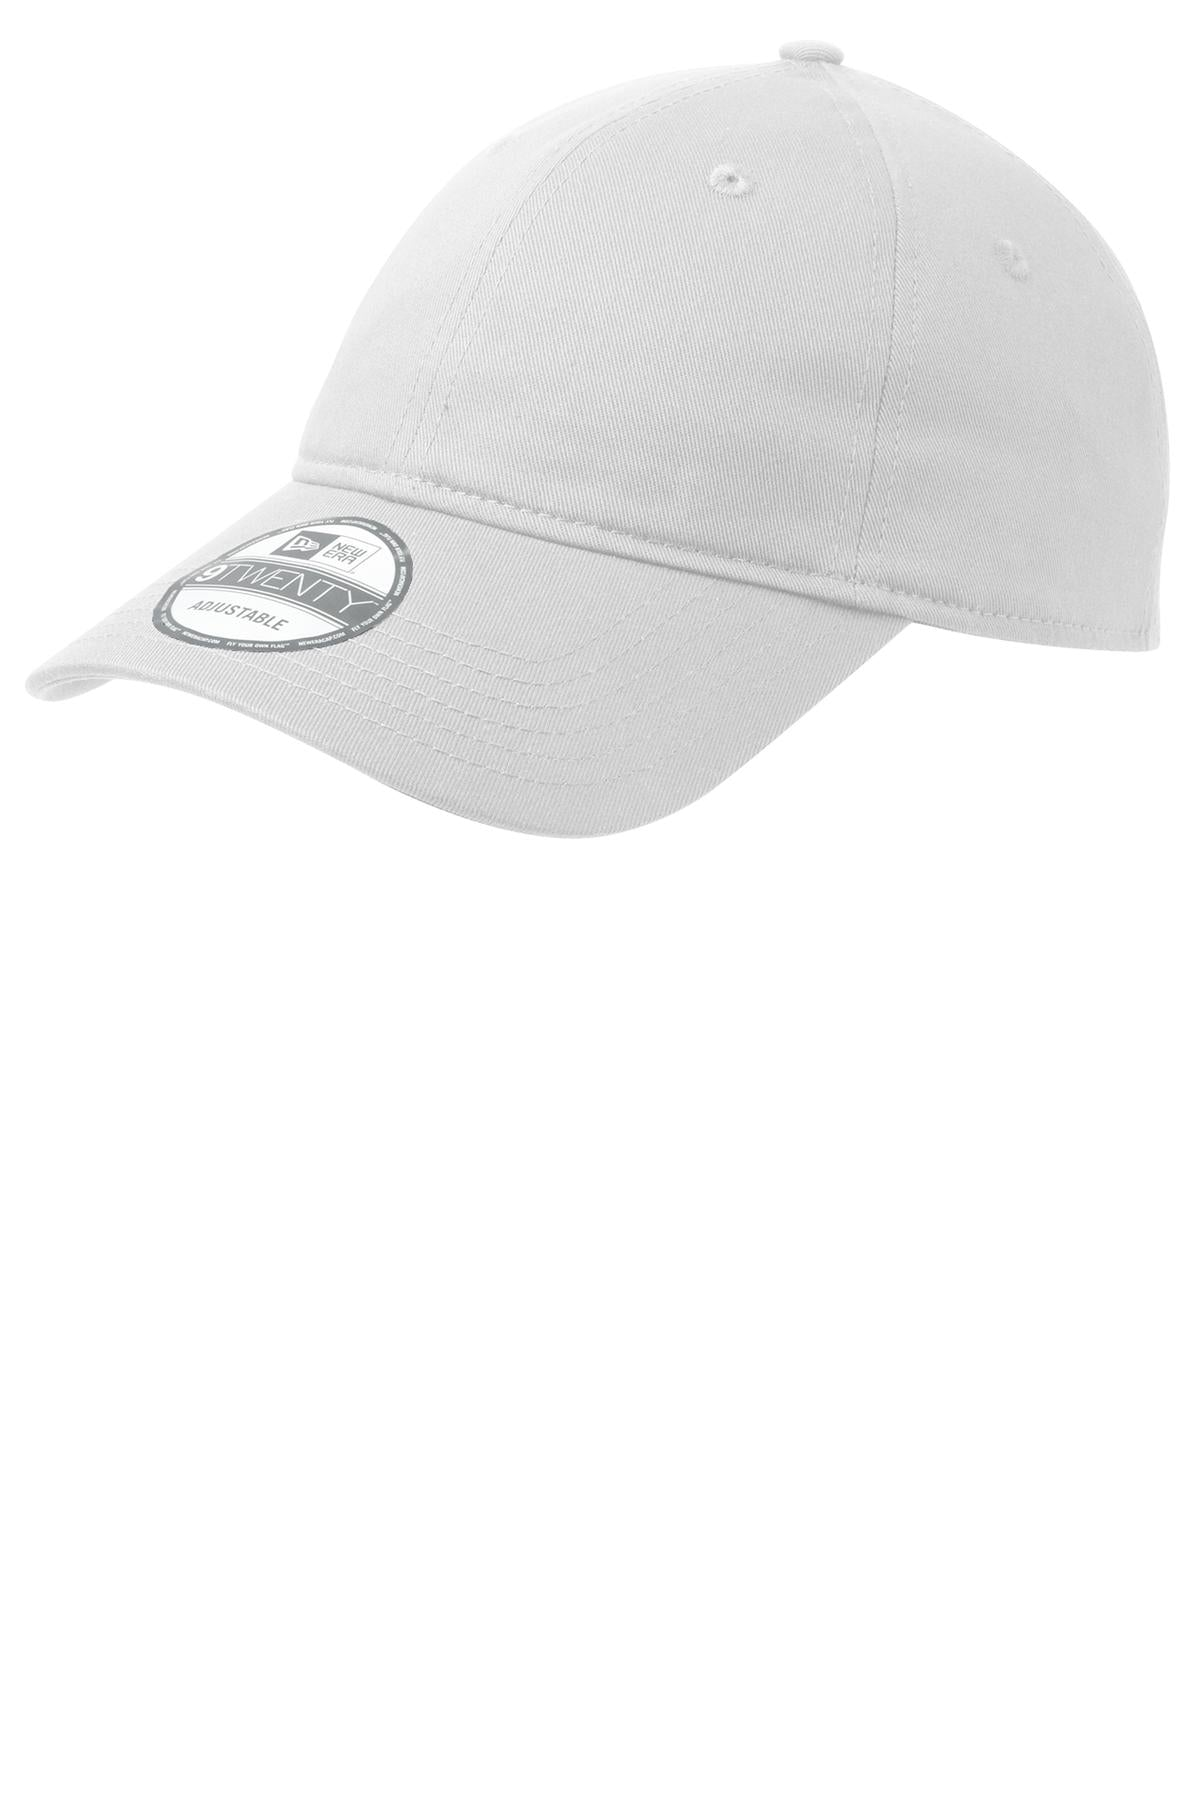 New Era® - Adjustable Unstructured Cap.  NE201 - Aspire Zone